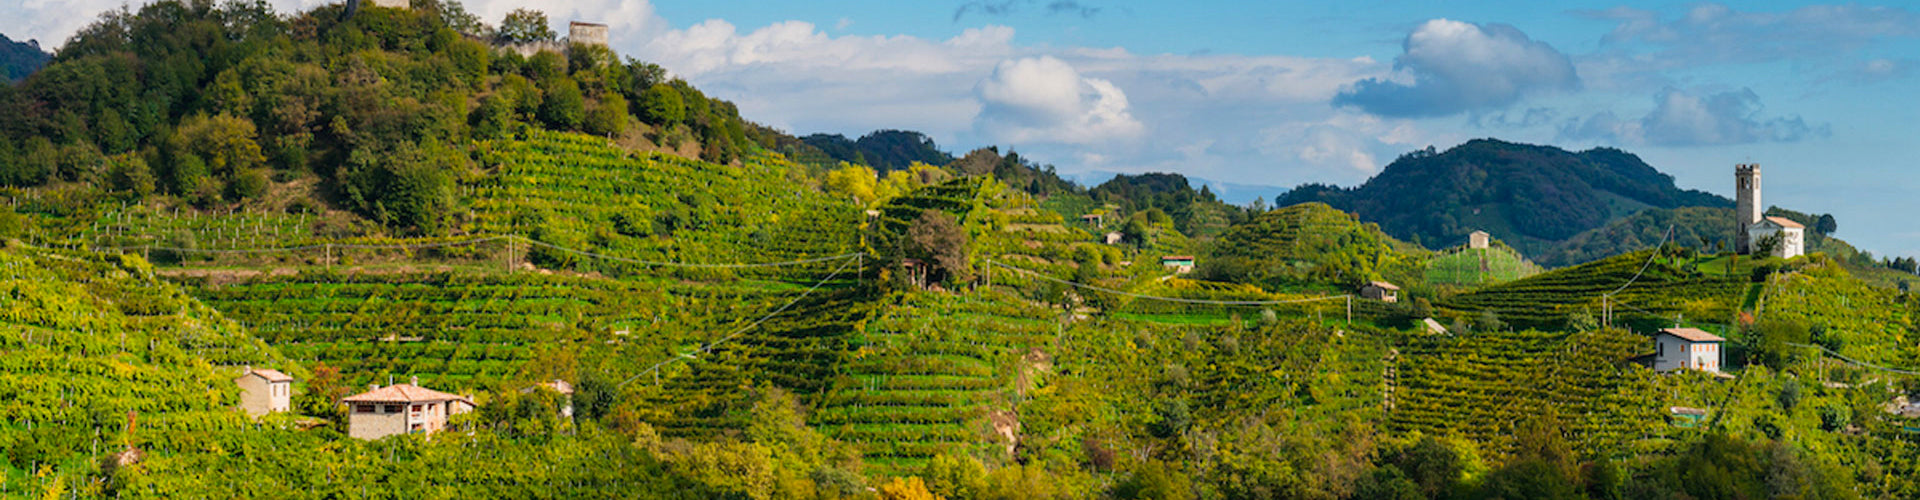 The vineyards of Carpenè Malvolti in the hills of Conegliano, Italy